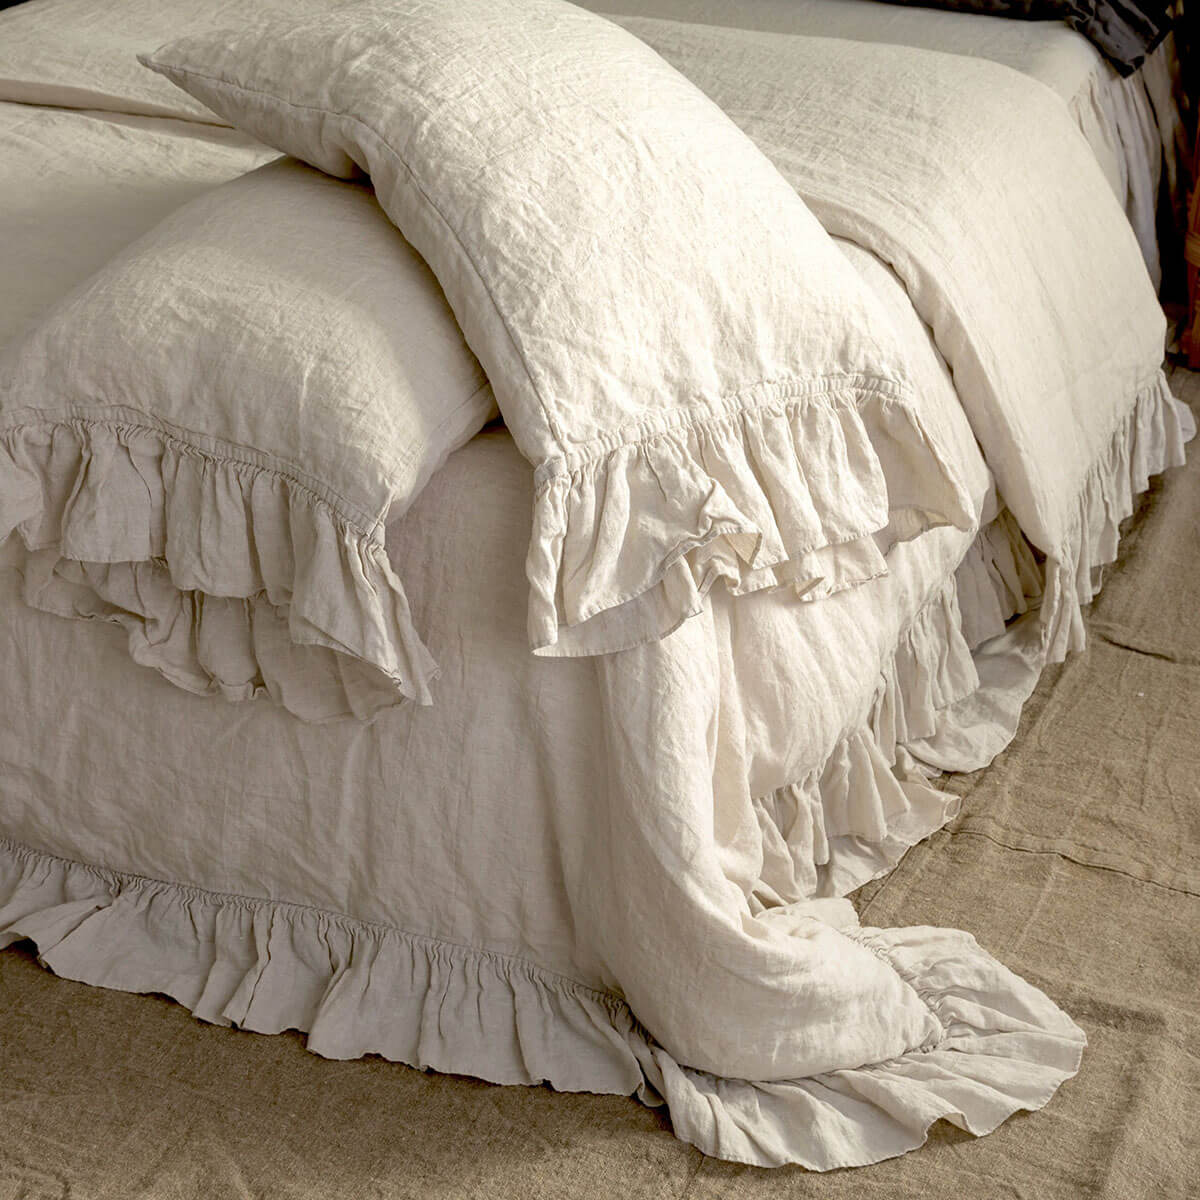 Victorian-Inspired Linen Bedding Set